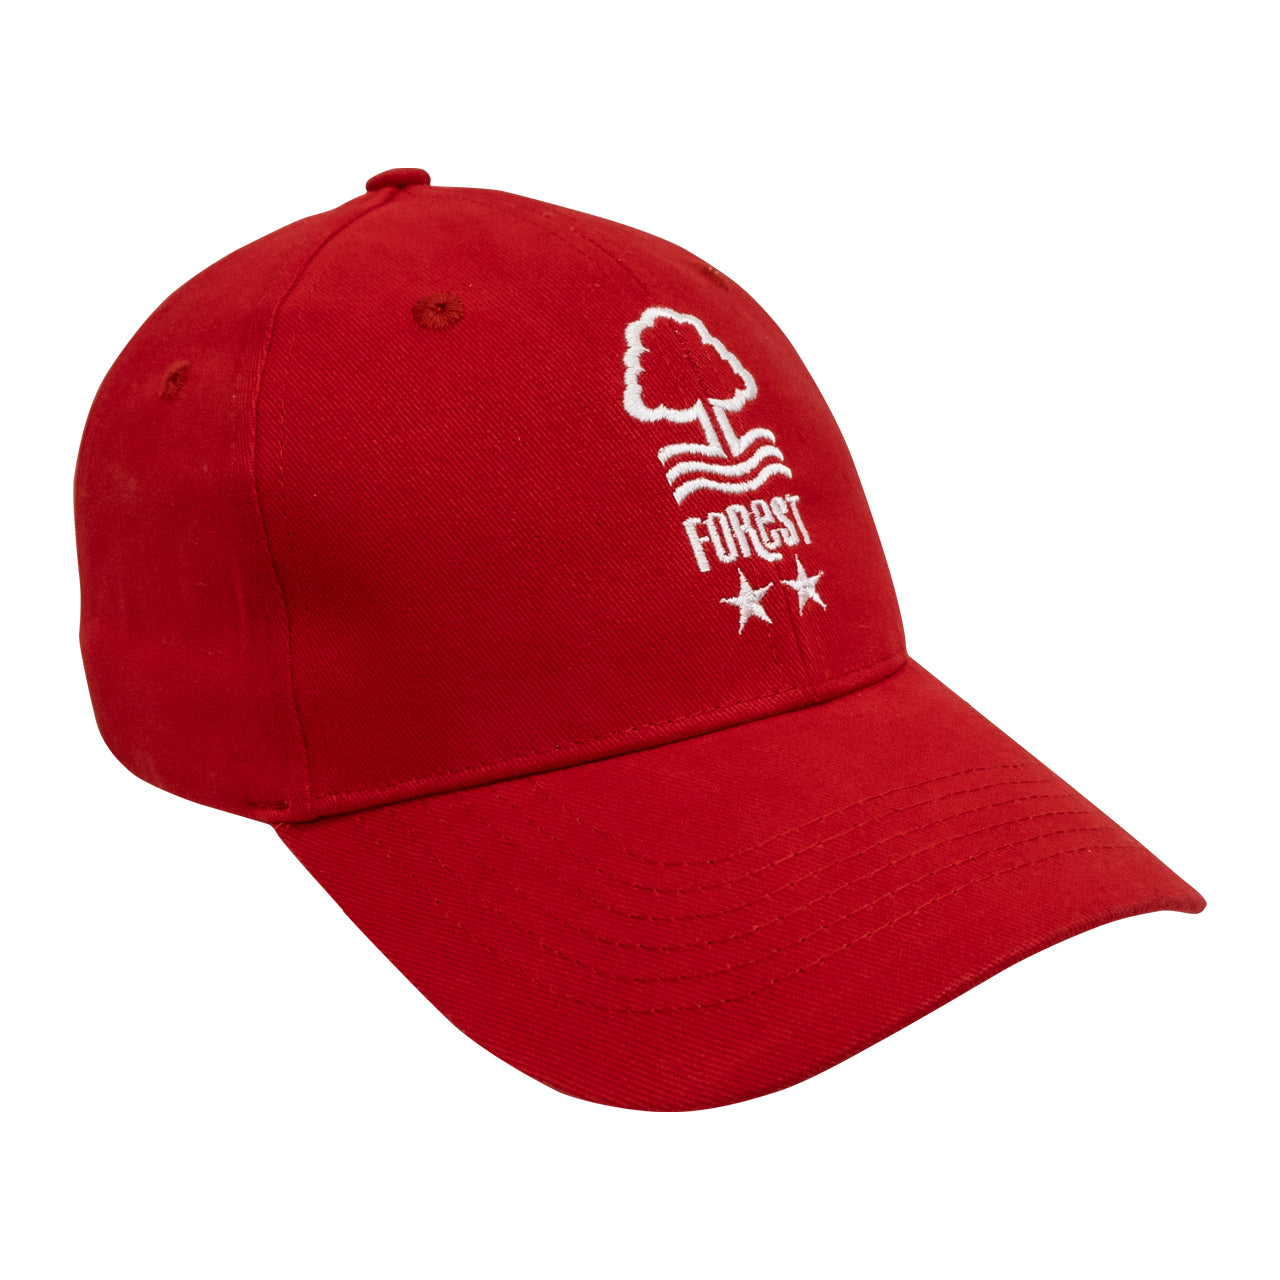 NFFC Red Junior Crest Cap